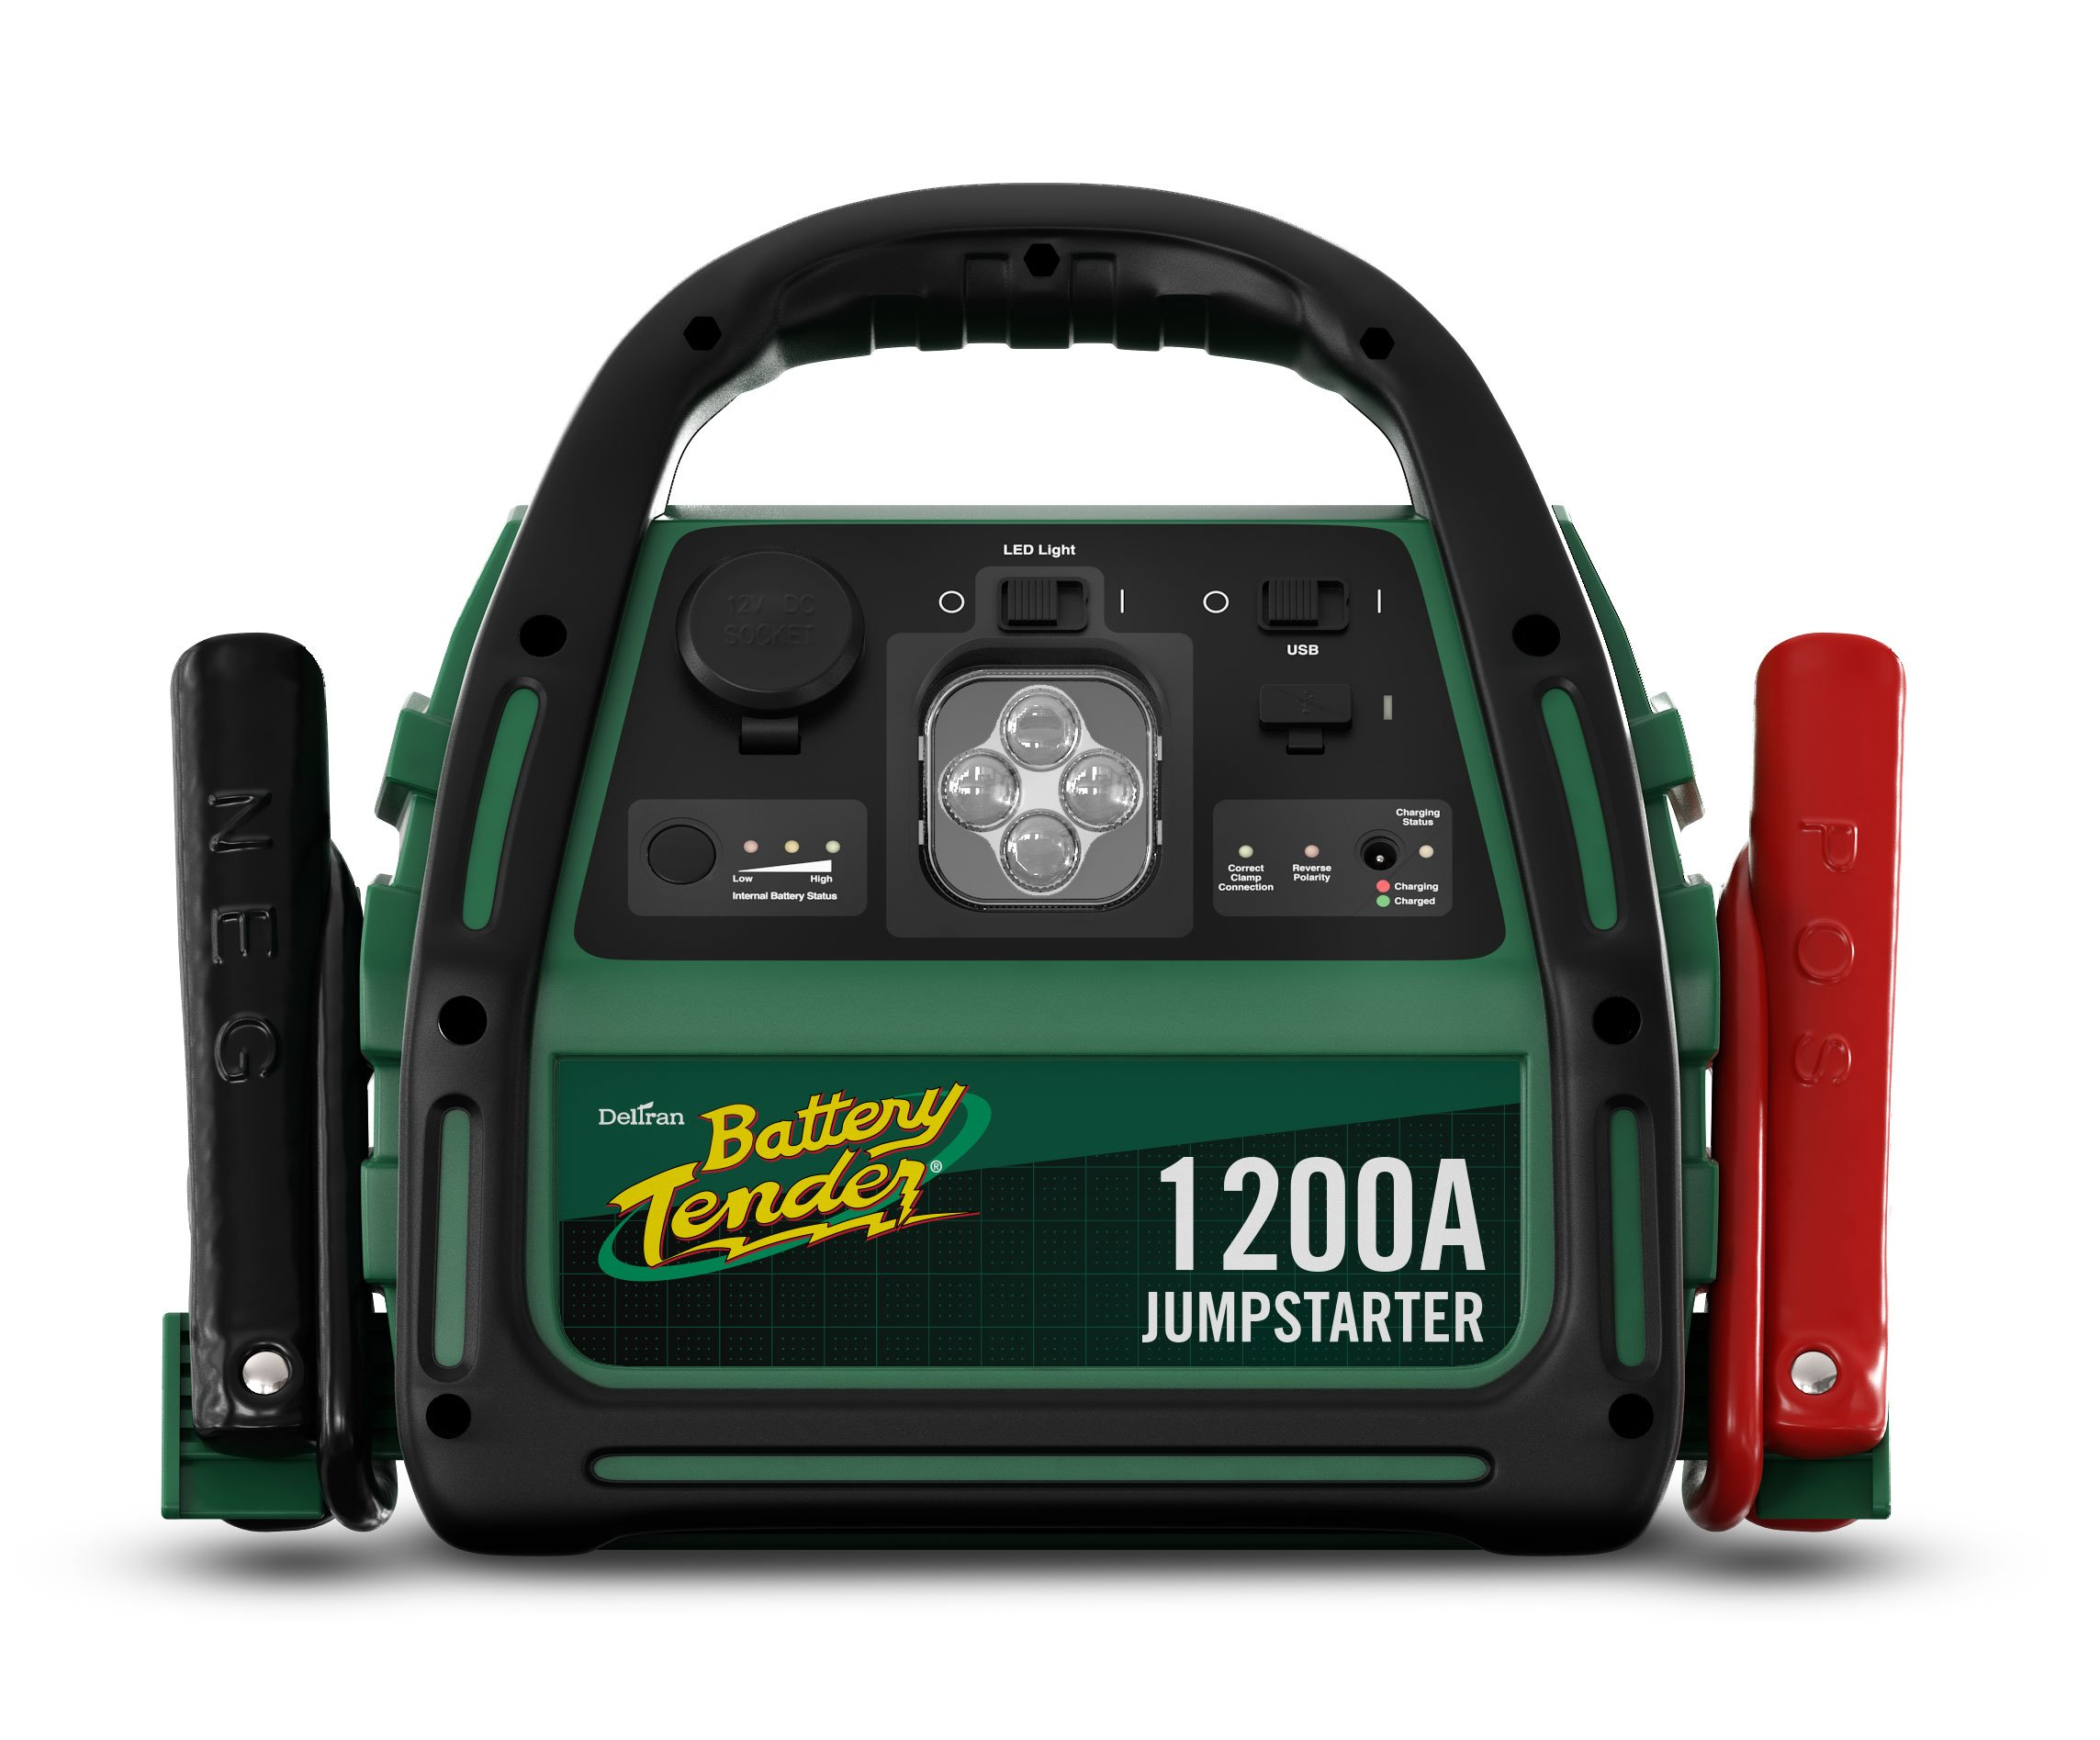 Battery Tender 1200 Peak Amp AGM Car Jump Starter with 2100A USB Ports to Charge Mobile Devices and 12V DC socket to Power Other Accessories